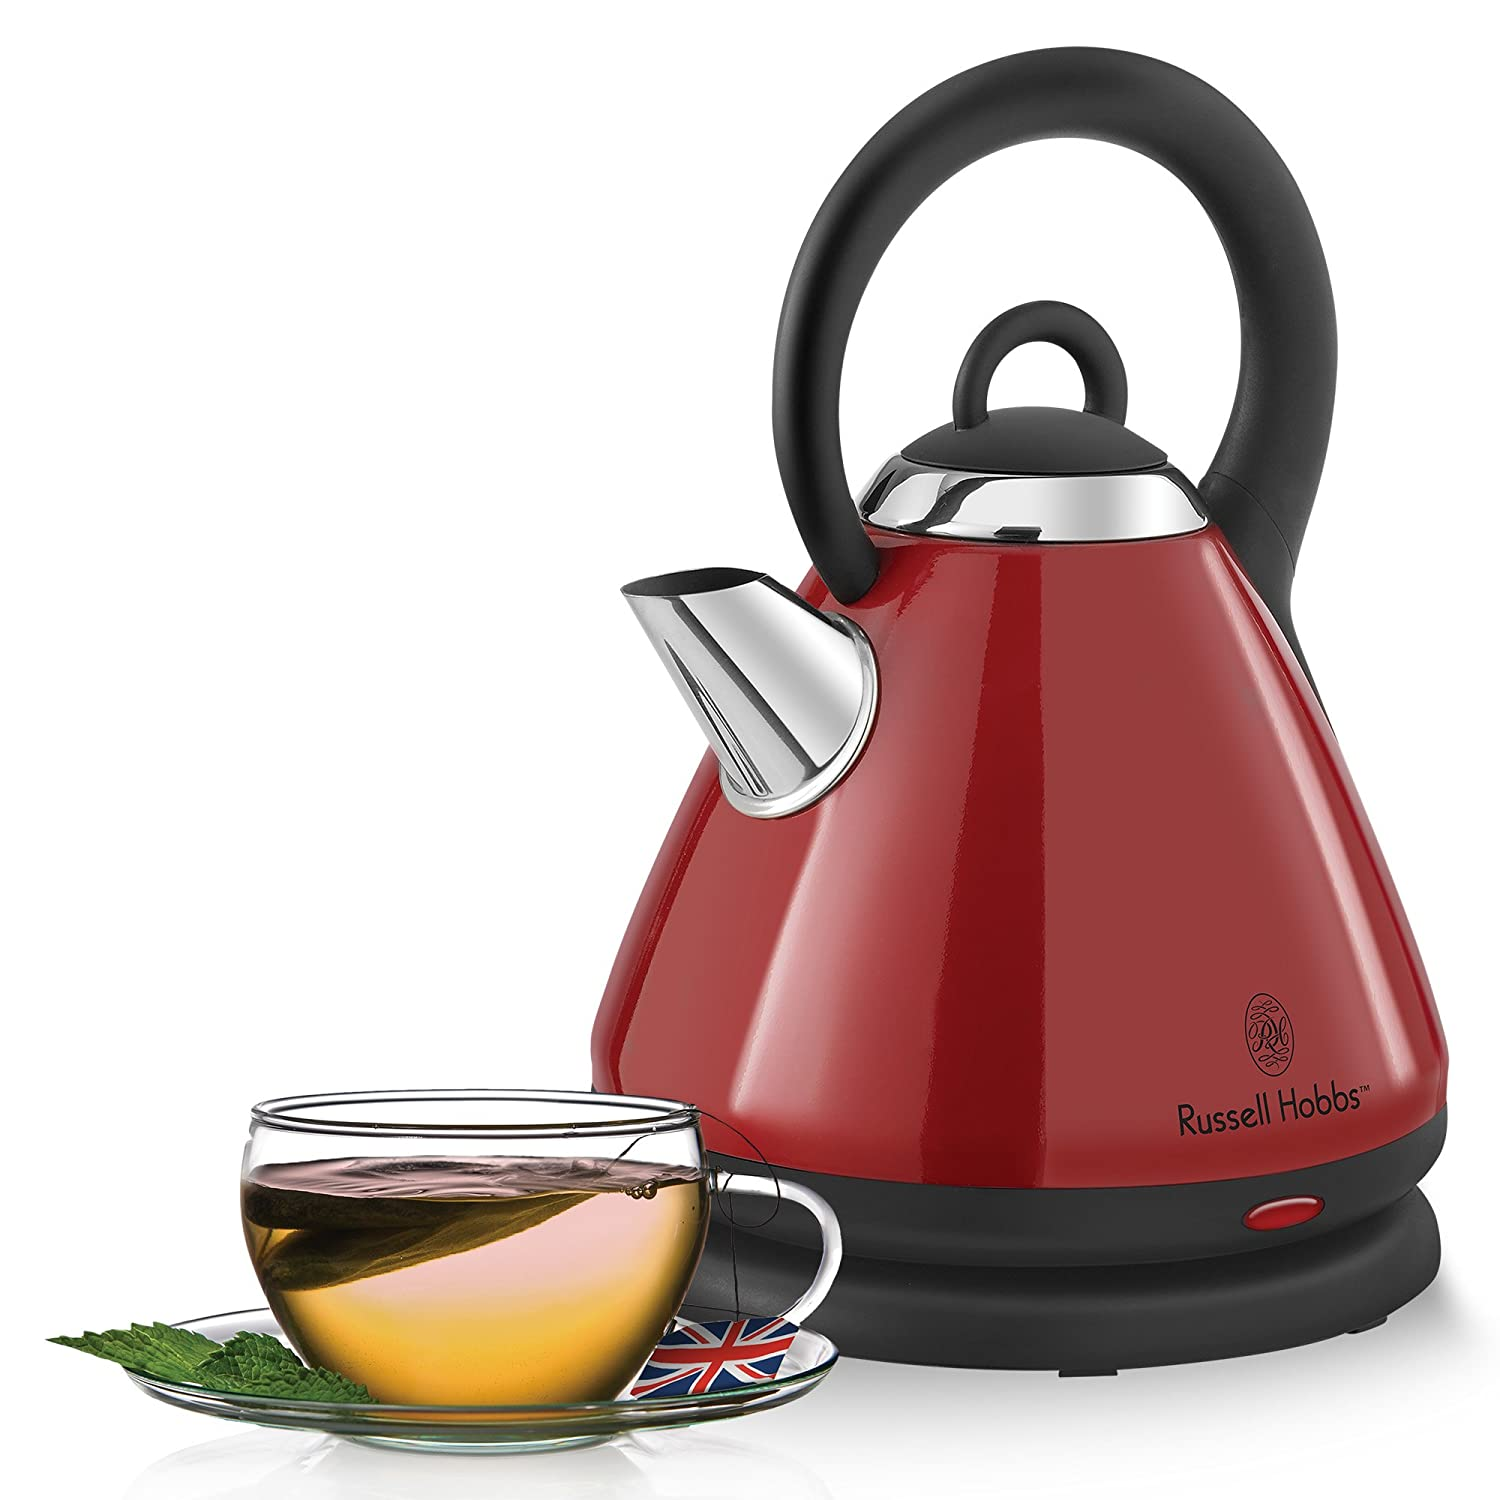 Russell Hobbs 1.8-Liter Dome Style Auto-Off 360-Degree Cordless Electric Kettle, Red, KE9001RC